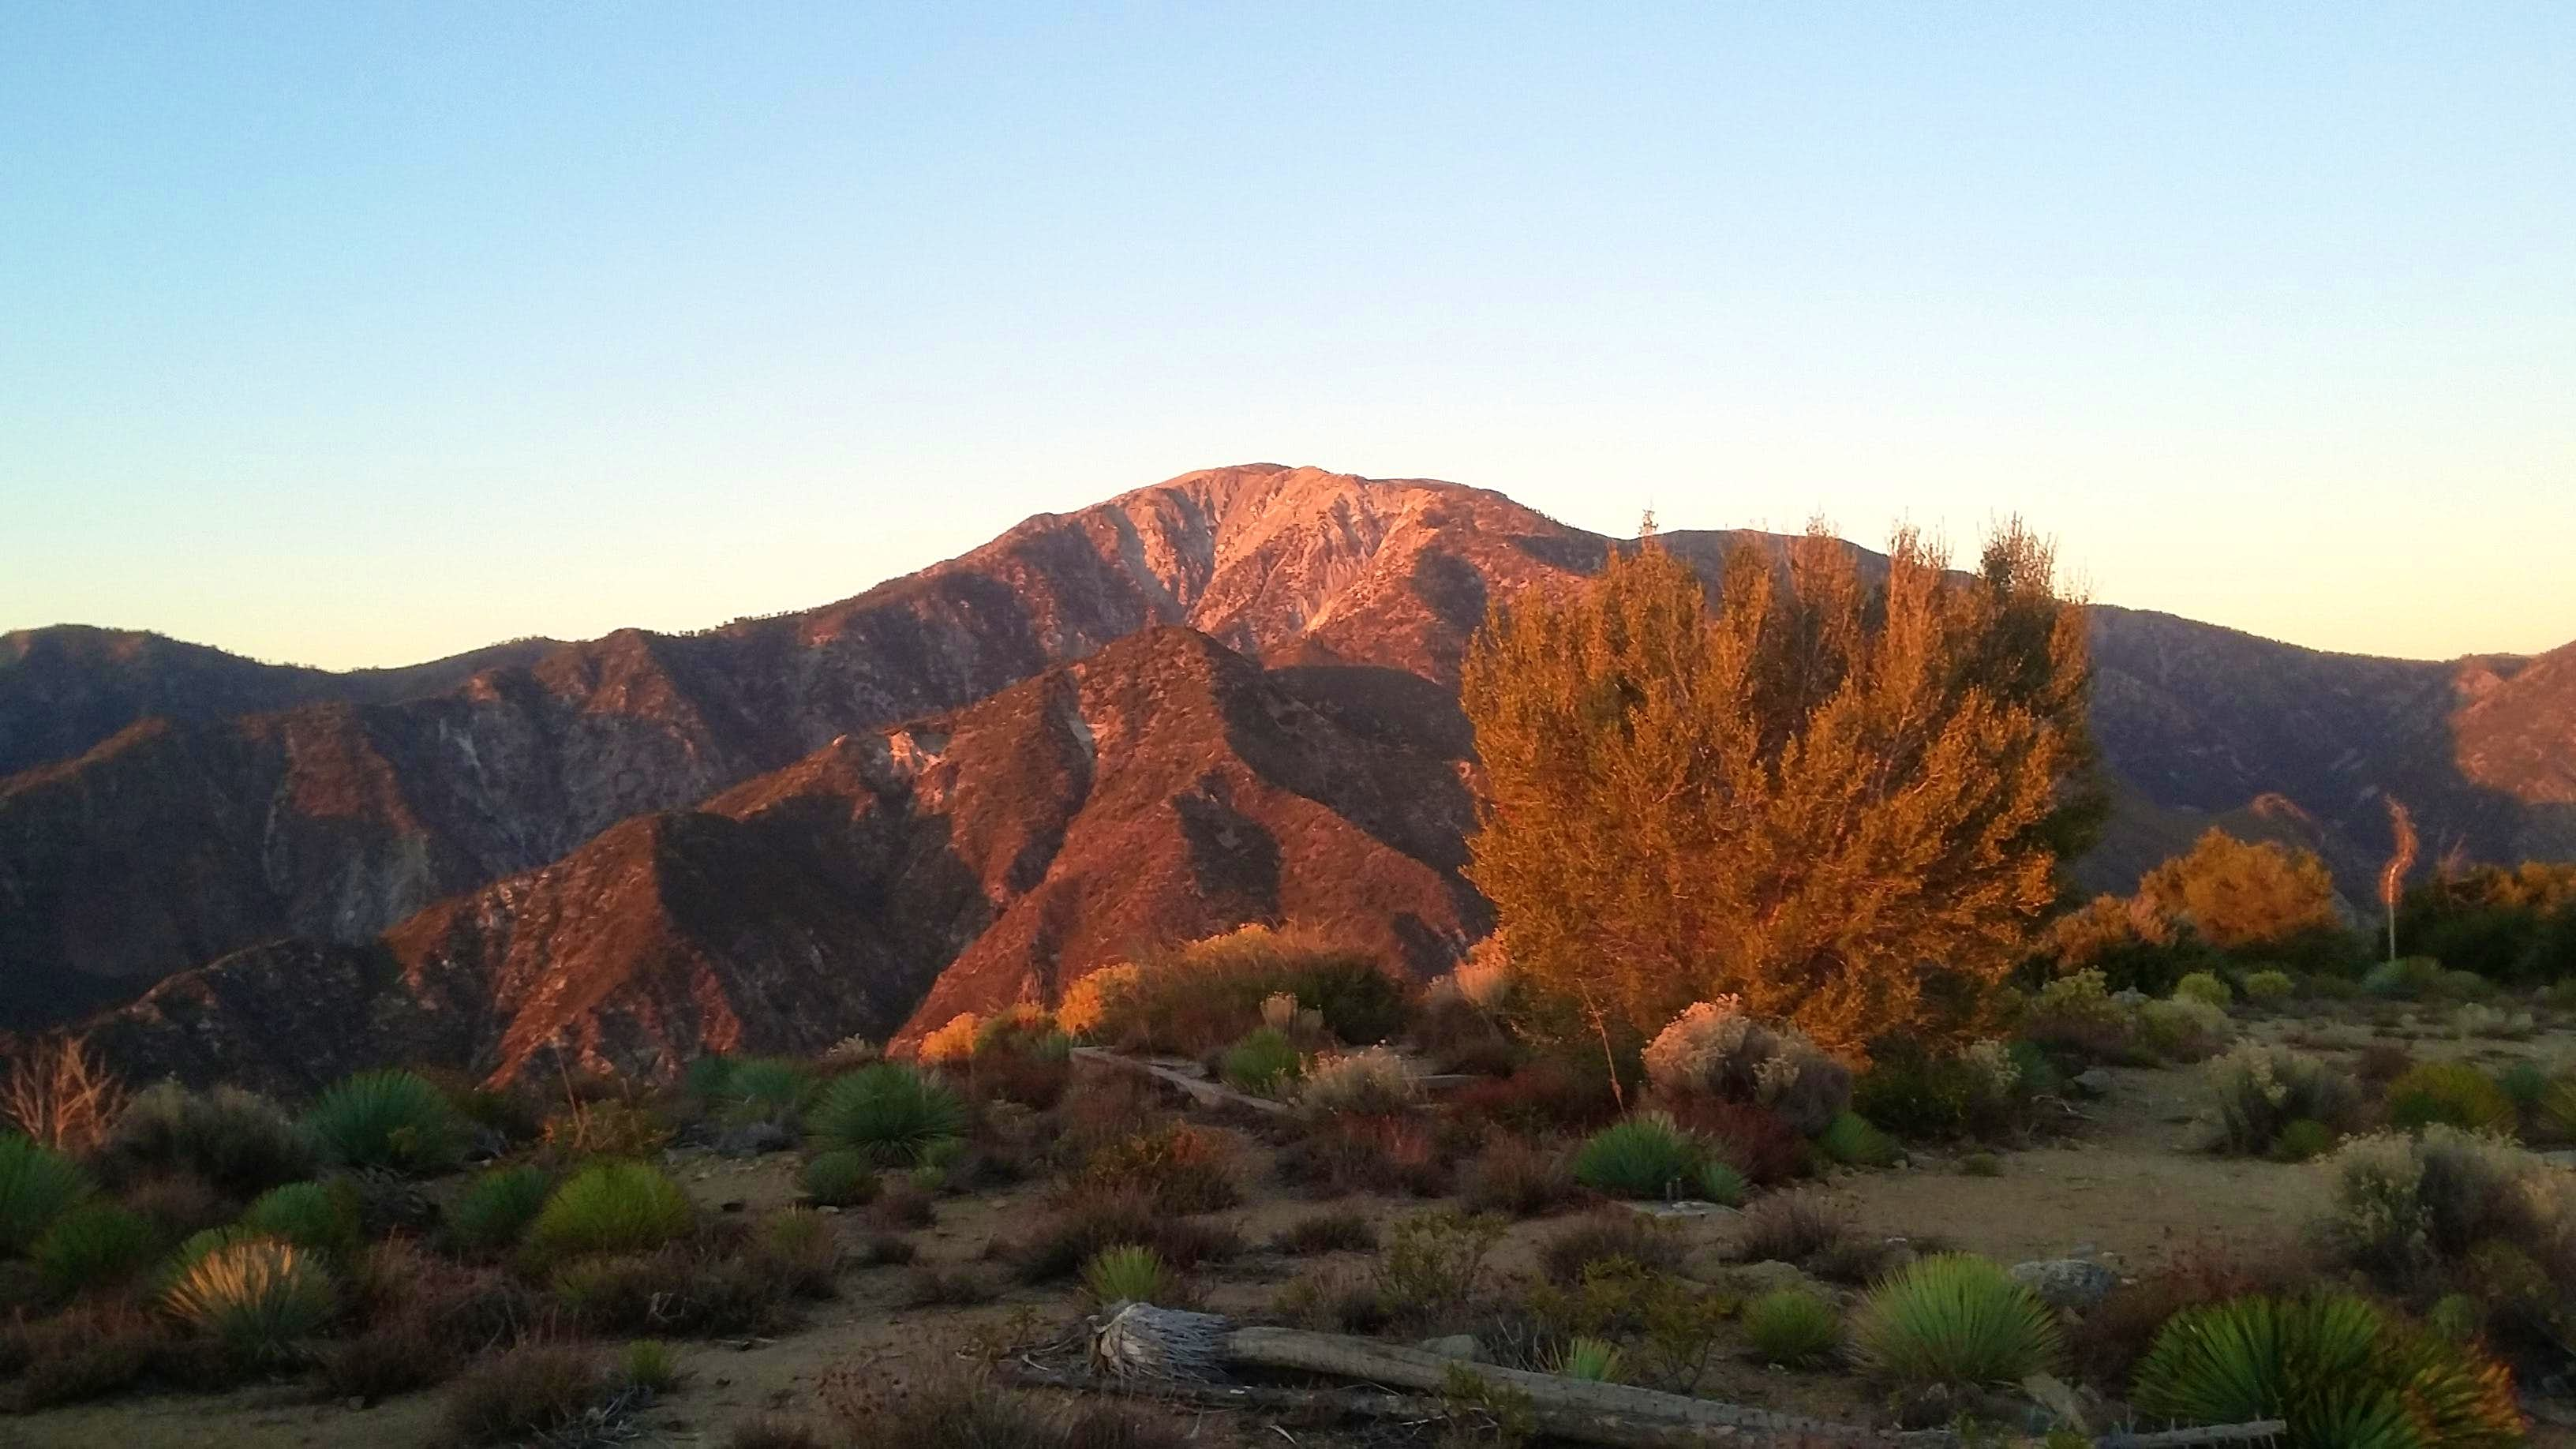 November Trip Over the San Gabriels